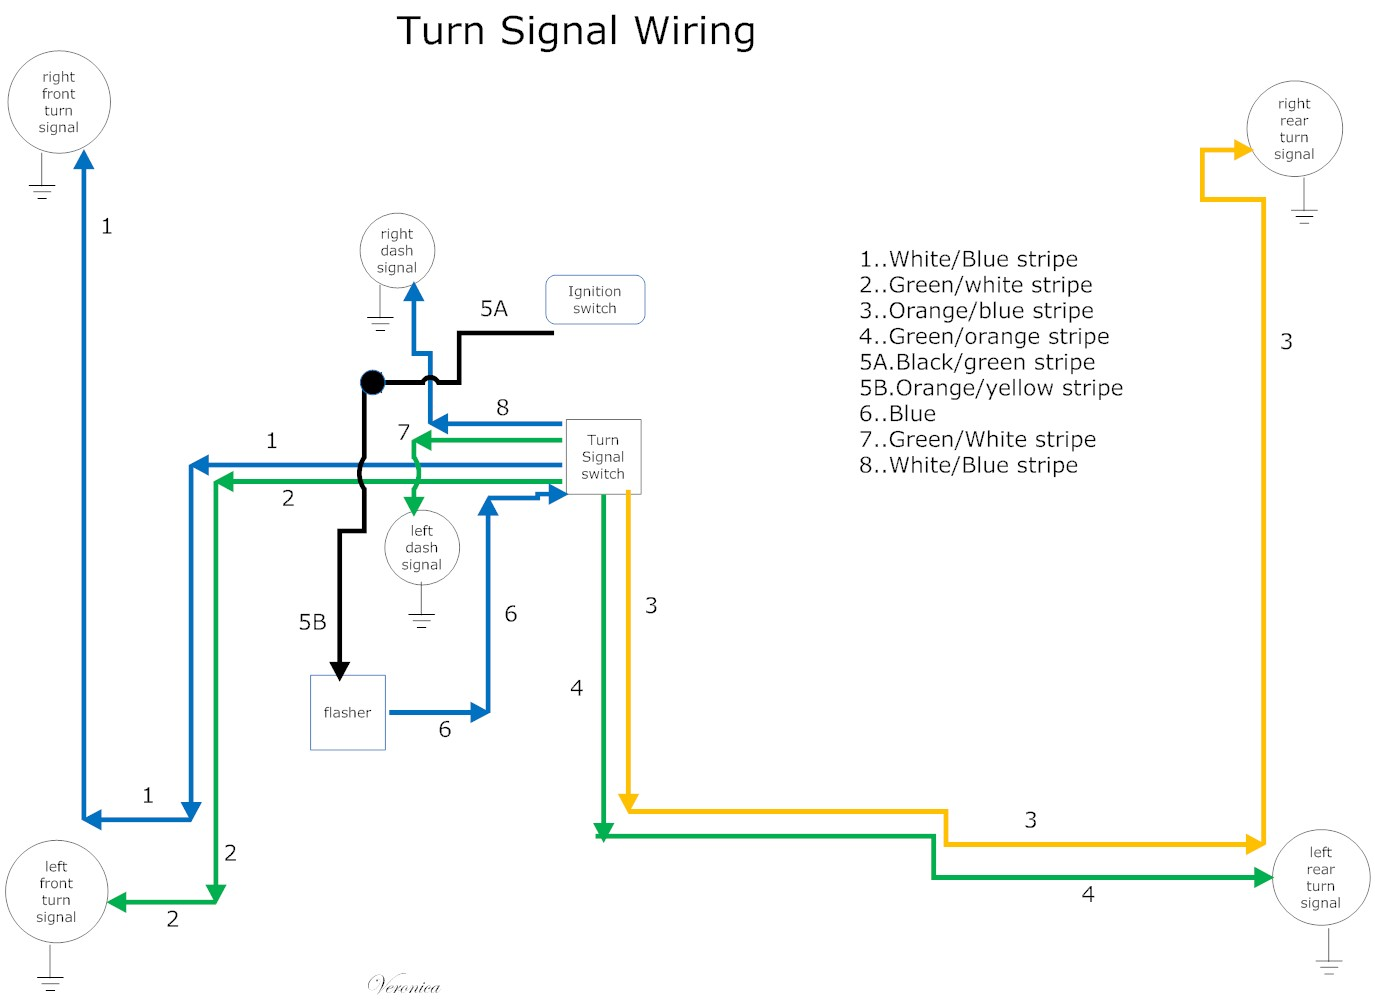 hight resolution of 1973 mustang tail light wiring diagram 1968 mustang ke light wiring diagram 1968 ford thunderbird tail